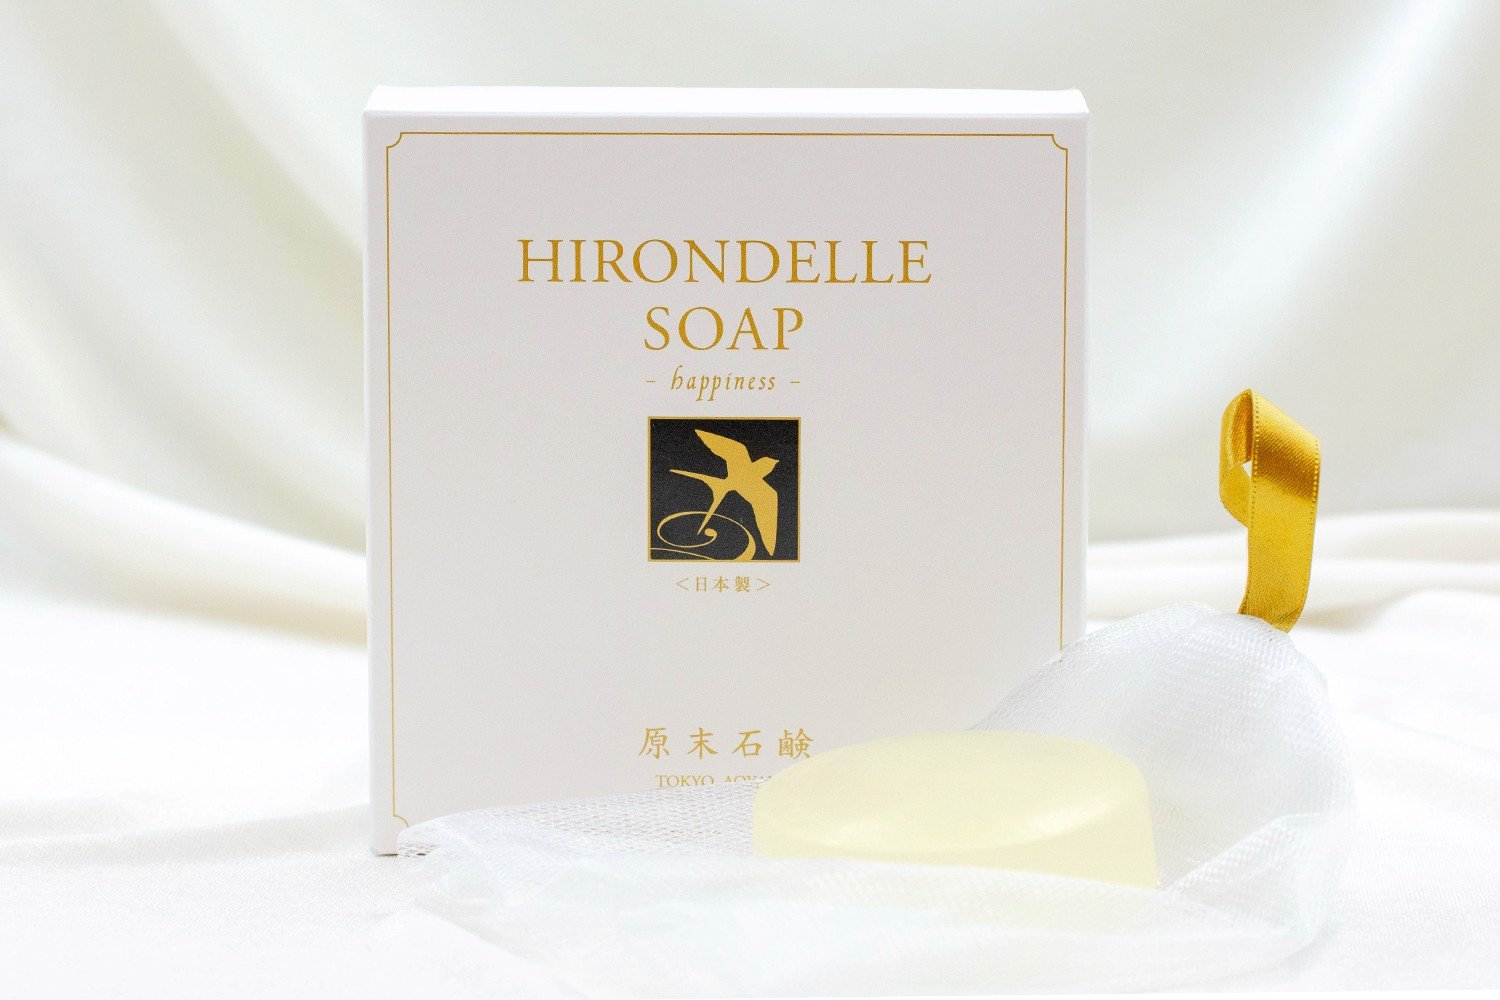 HIRONDELLE SOAP happiness